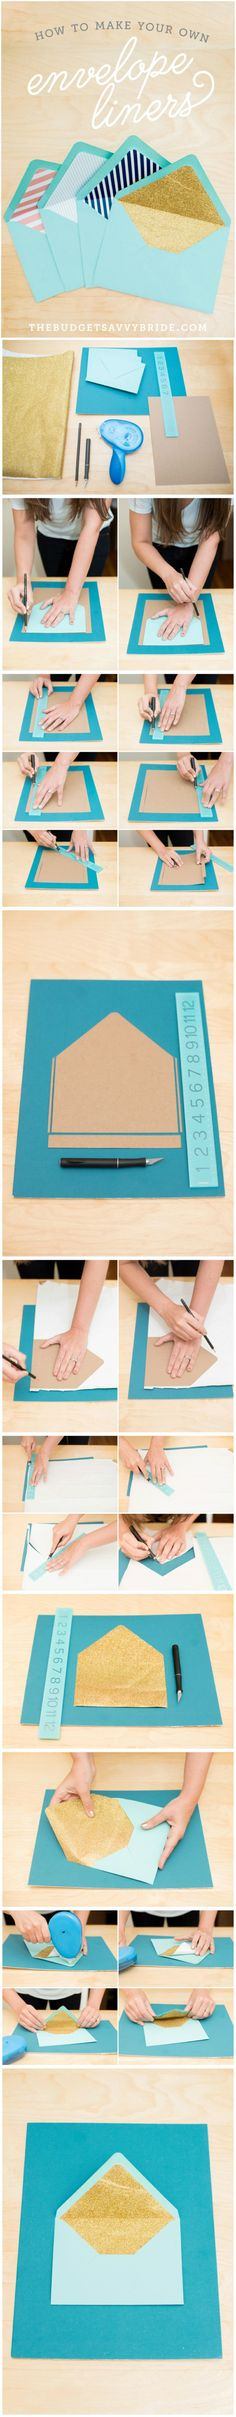 How to make your own colorful custom envelope liners! Step by step tutorial with photos! // photos by Mikkel Paige Photography